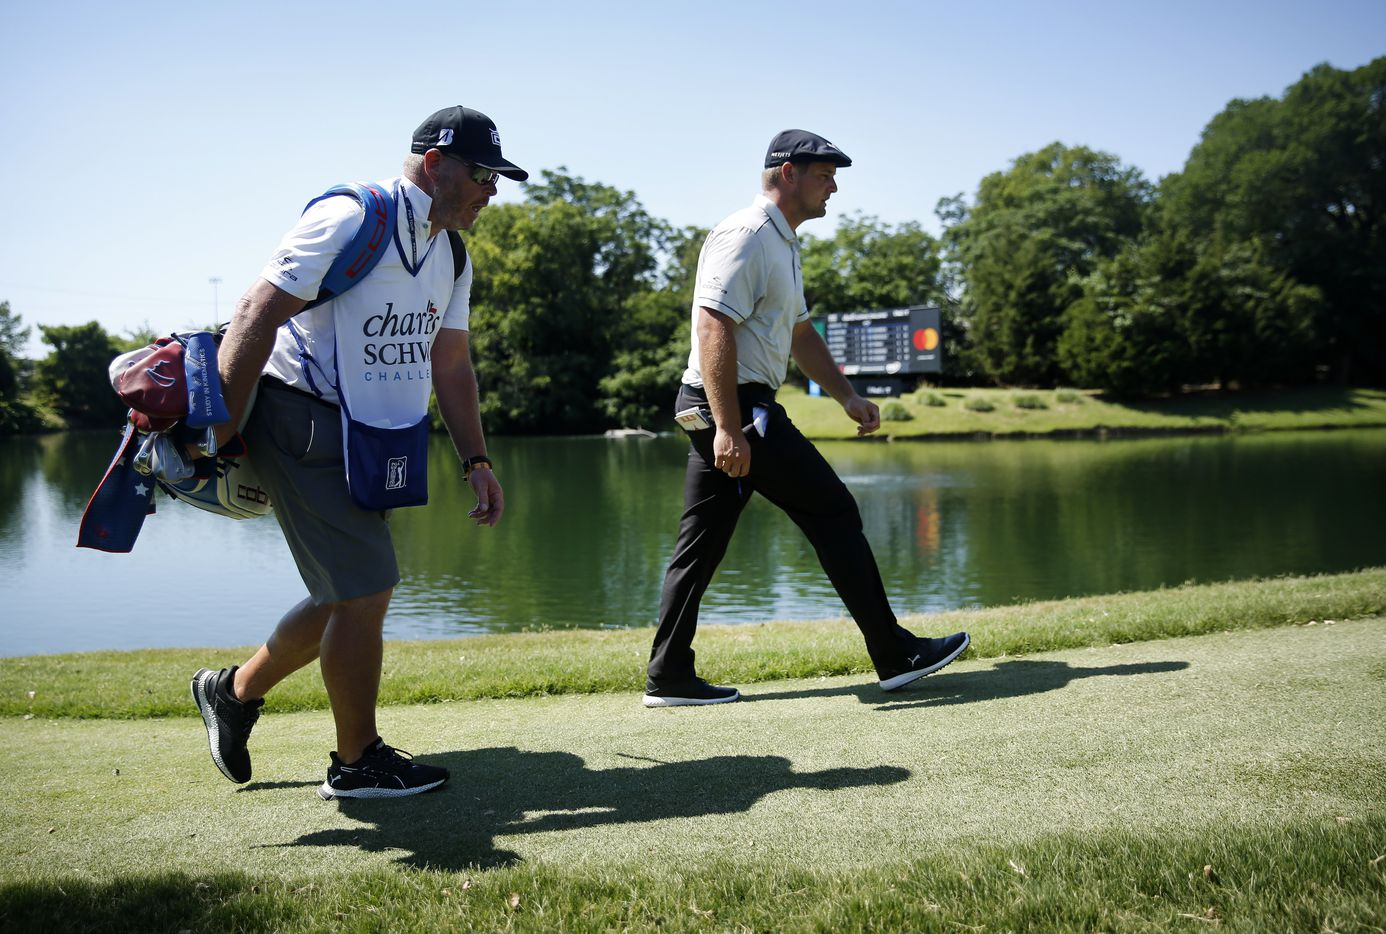 PGA Tour golfer Bryson DeChambeau and his caddie Tim Tucker walk back up the par-3, No. 13 during his third round of the Charles Schwab Challenge at the Colonial Country Club in Fort Worth, Saturday, June 13, 2020.  The Challenge is the first tour event since the COVID-19 pandemic began. (Tom Fox/The Dallas Morning News)